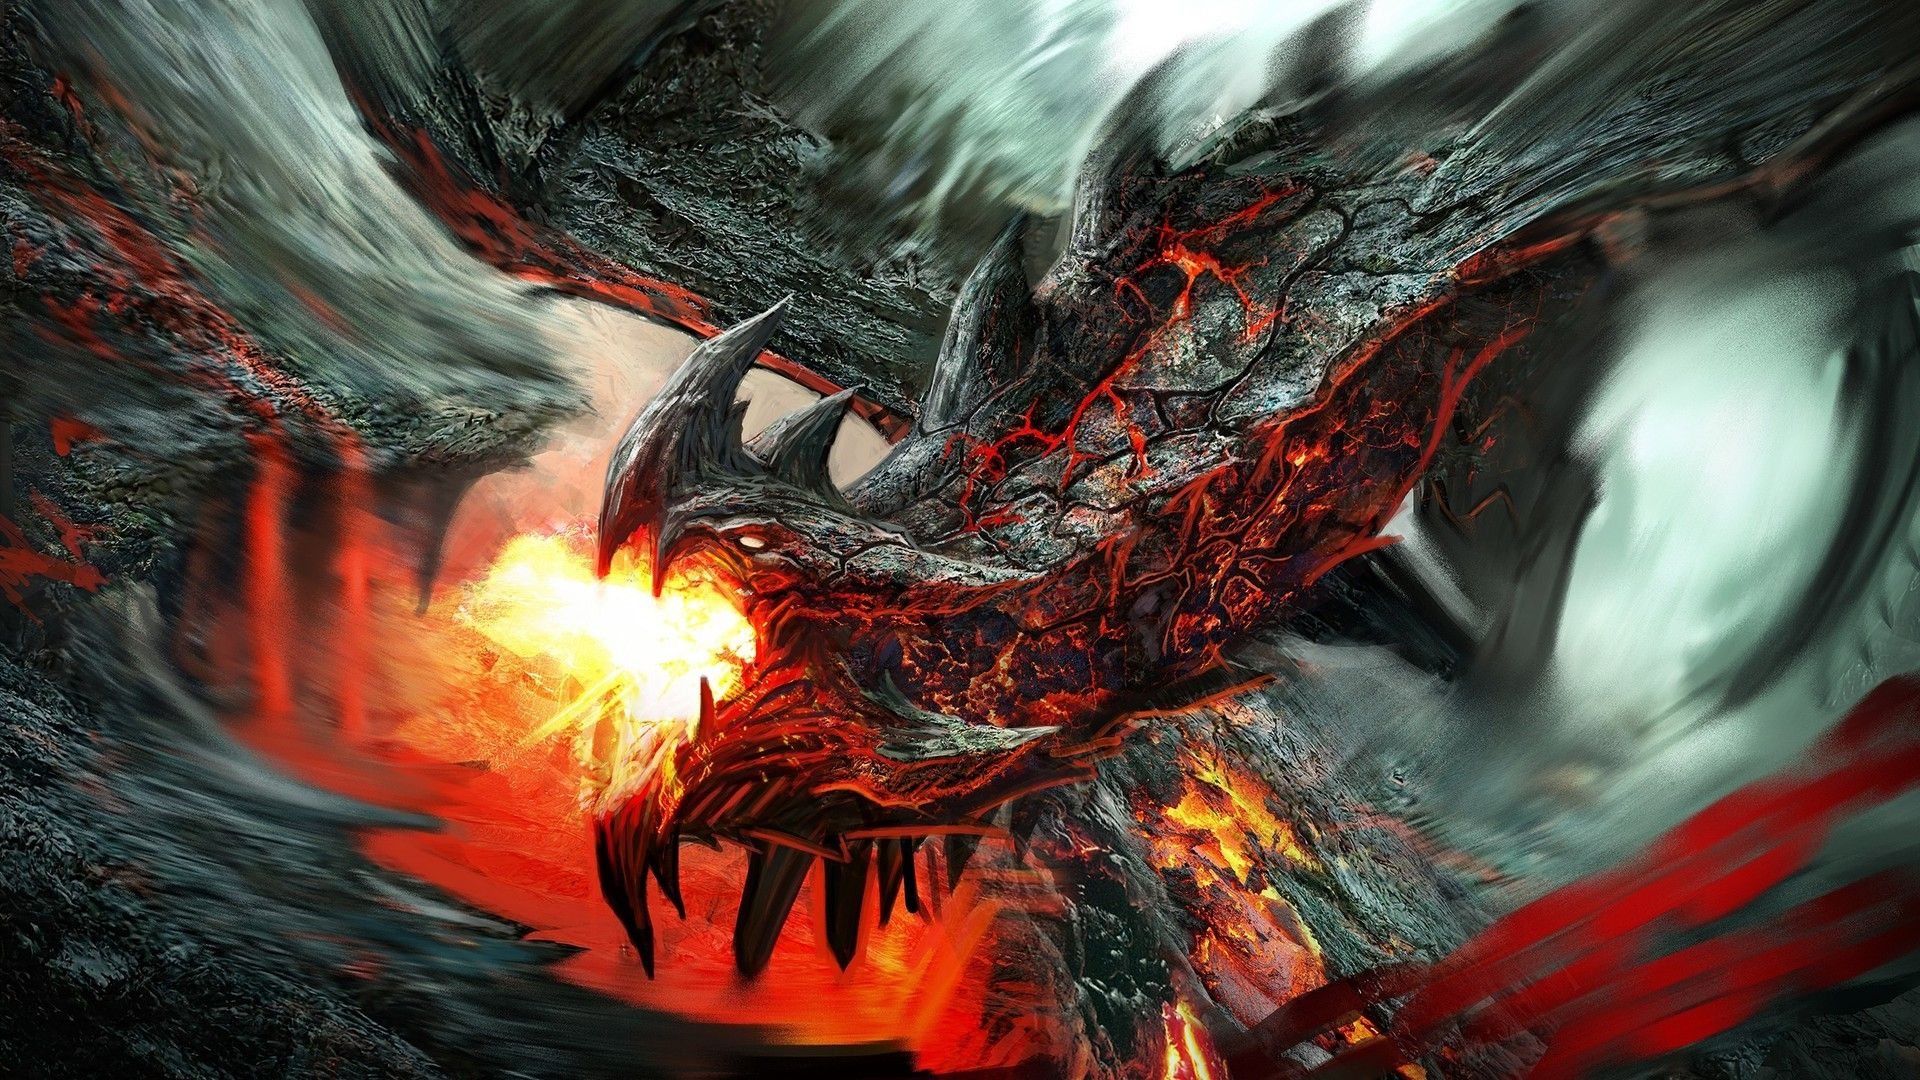 Fire Breathing Lava Dragon Fantasy Hd Wallpaper 1920x1080